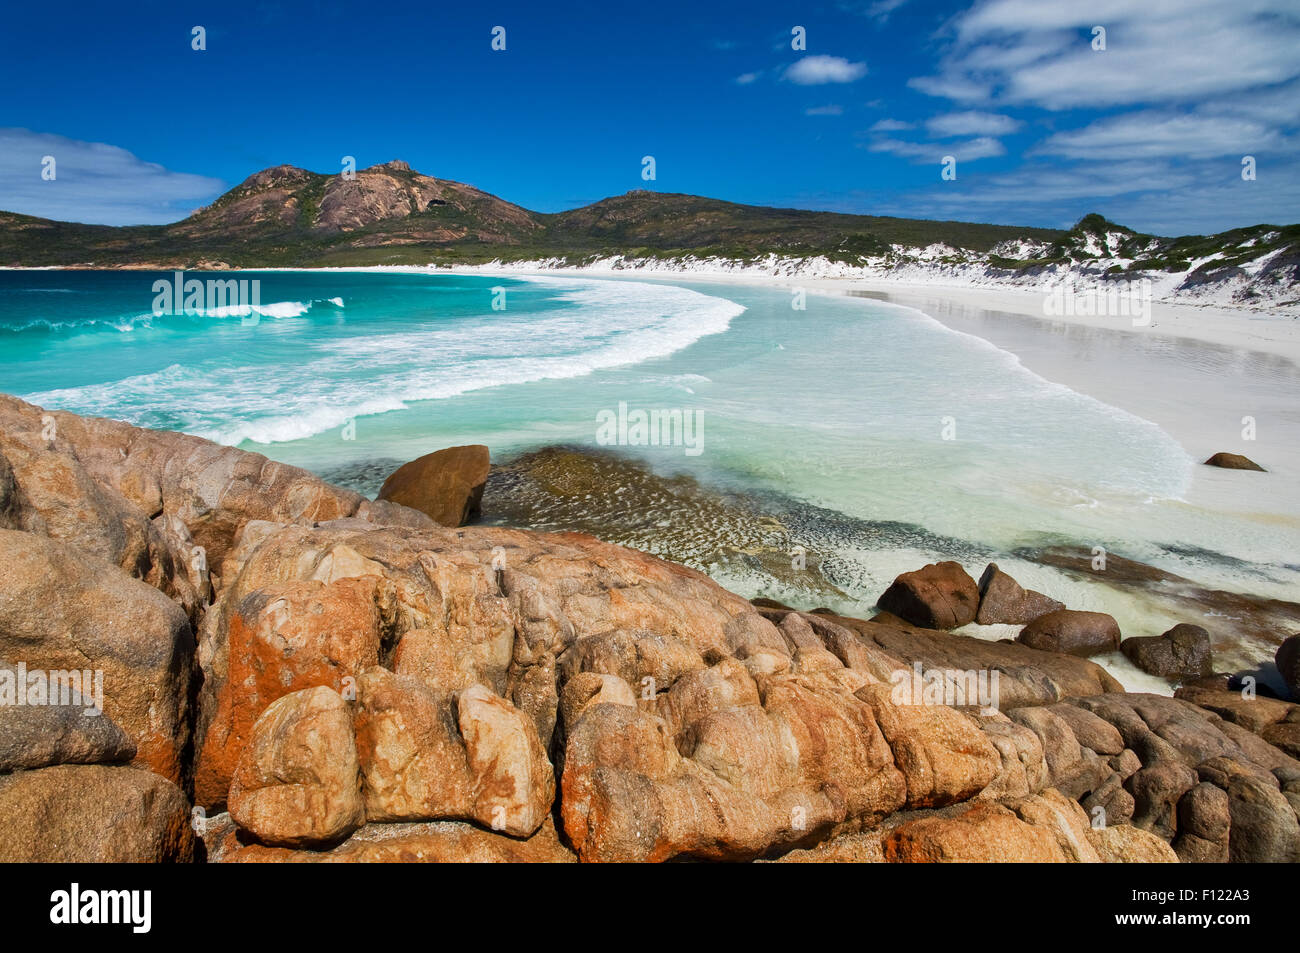 Turquoise waters in Thistle Cove. - Stock Image